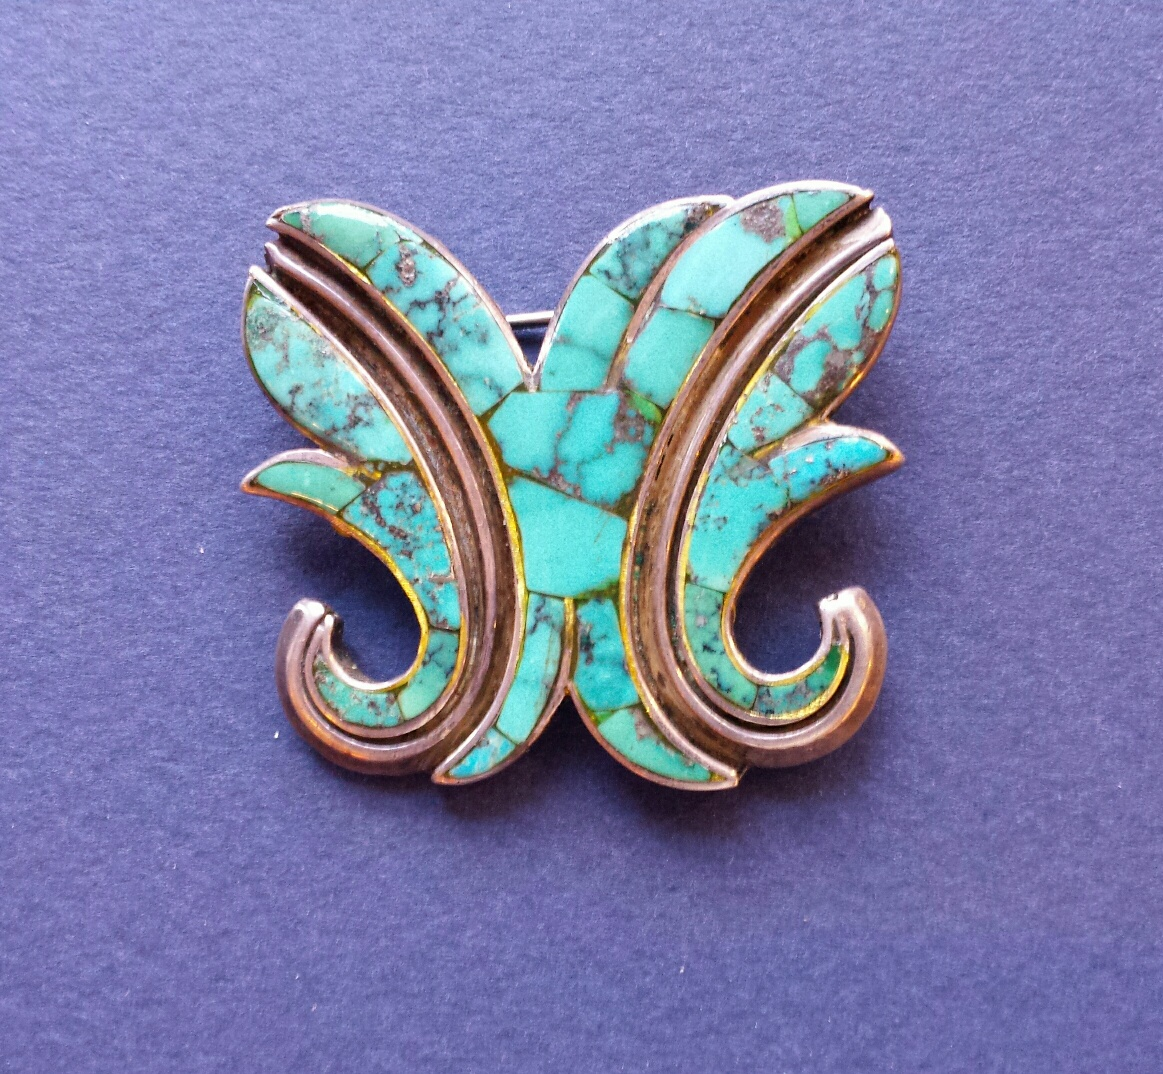 Turquoise inlay pin